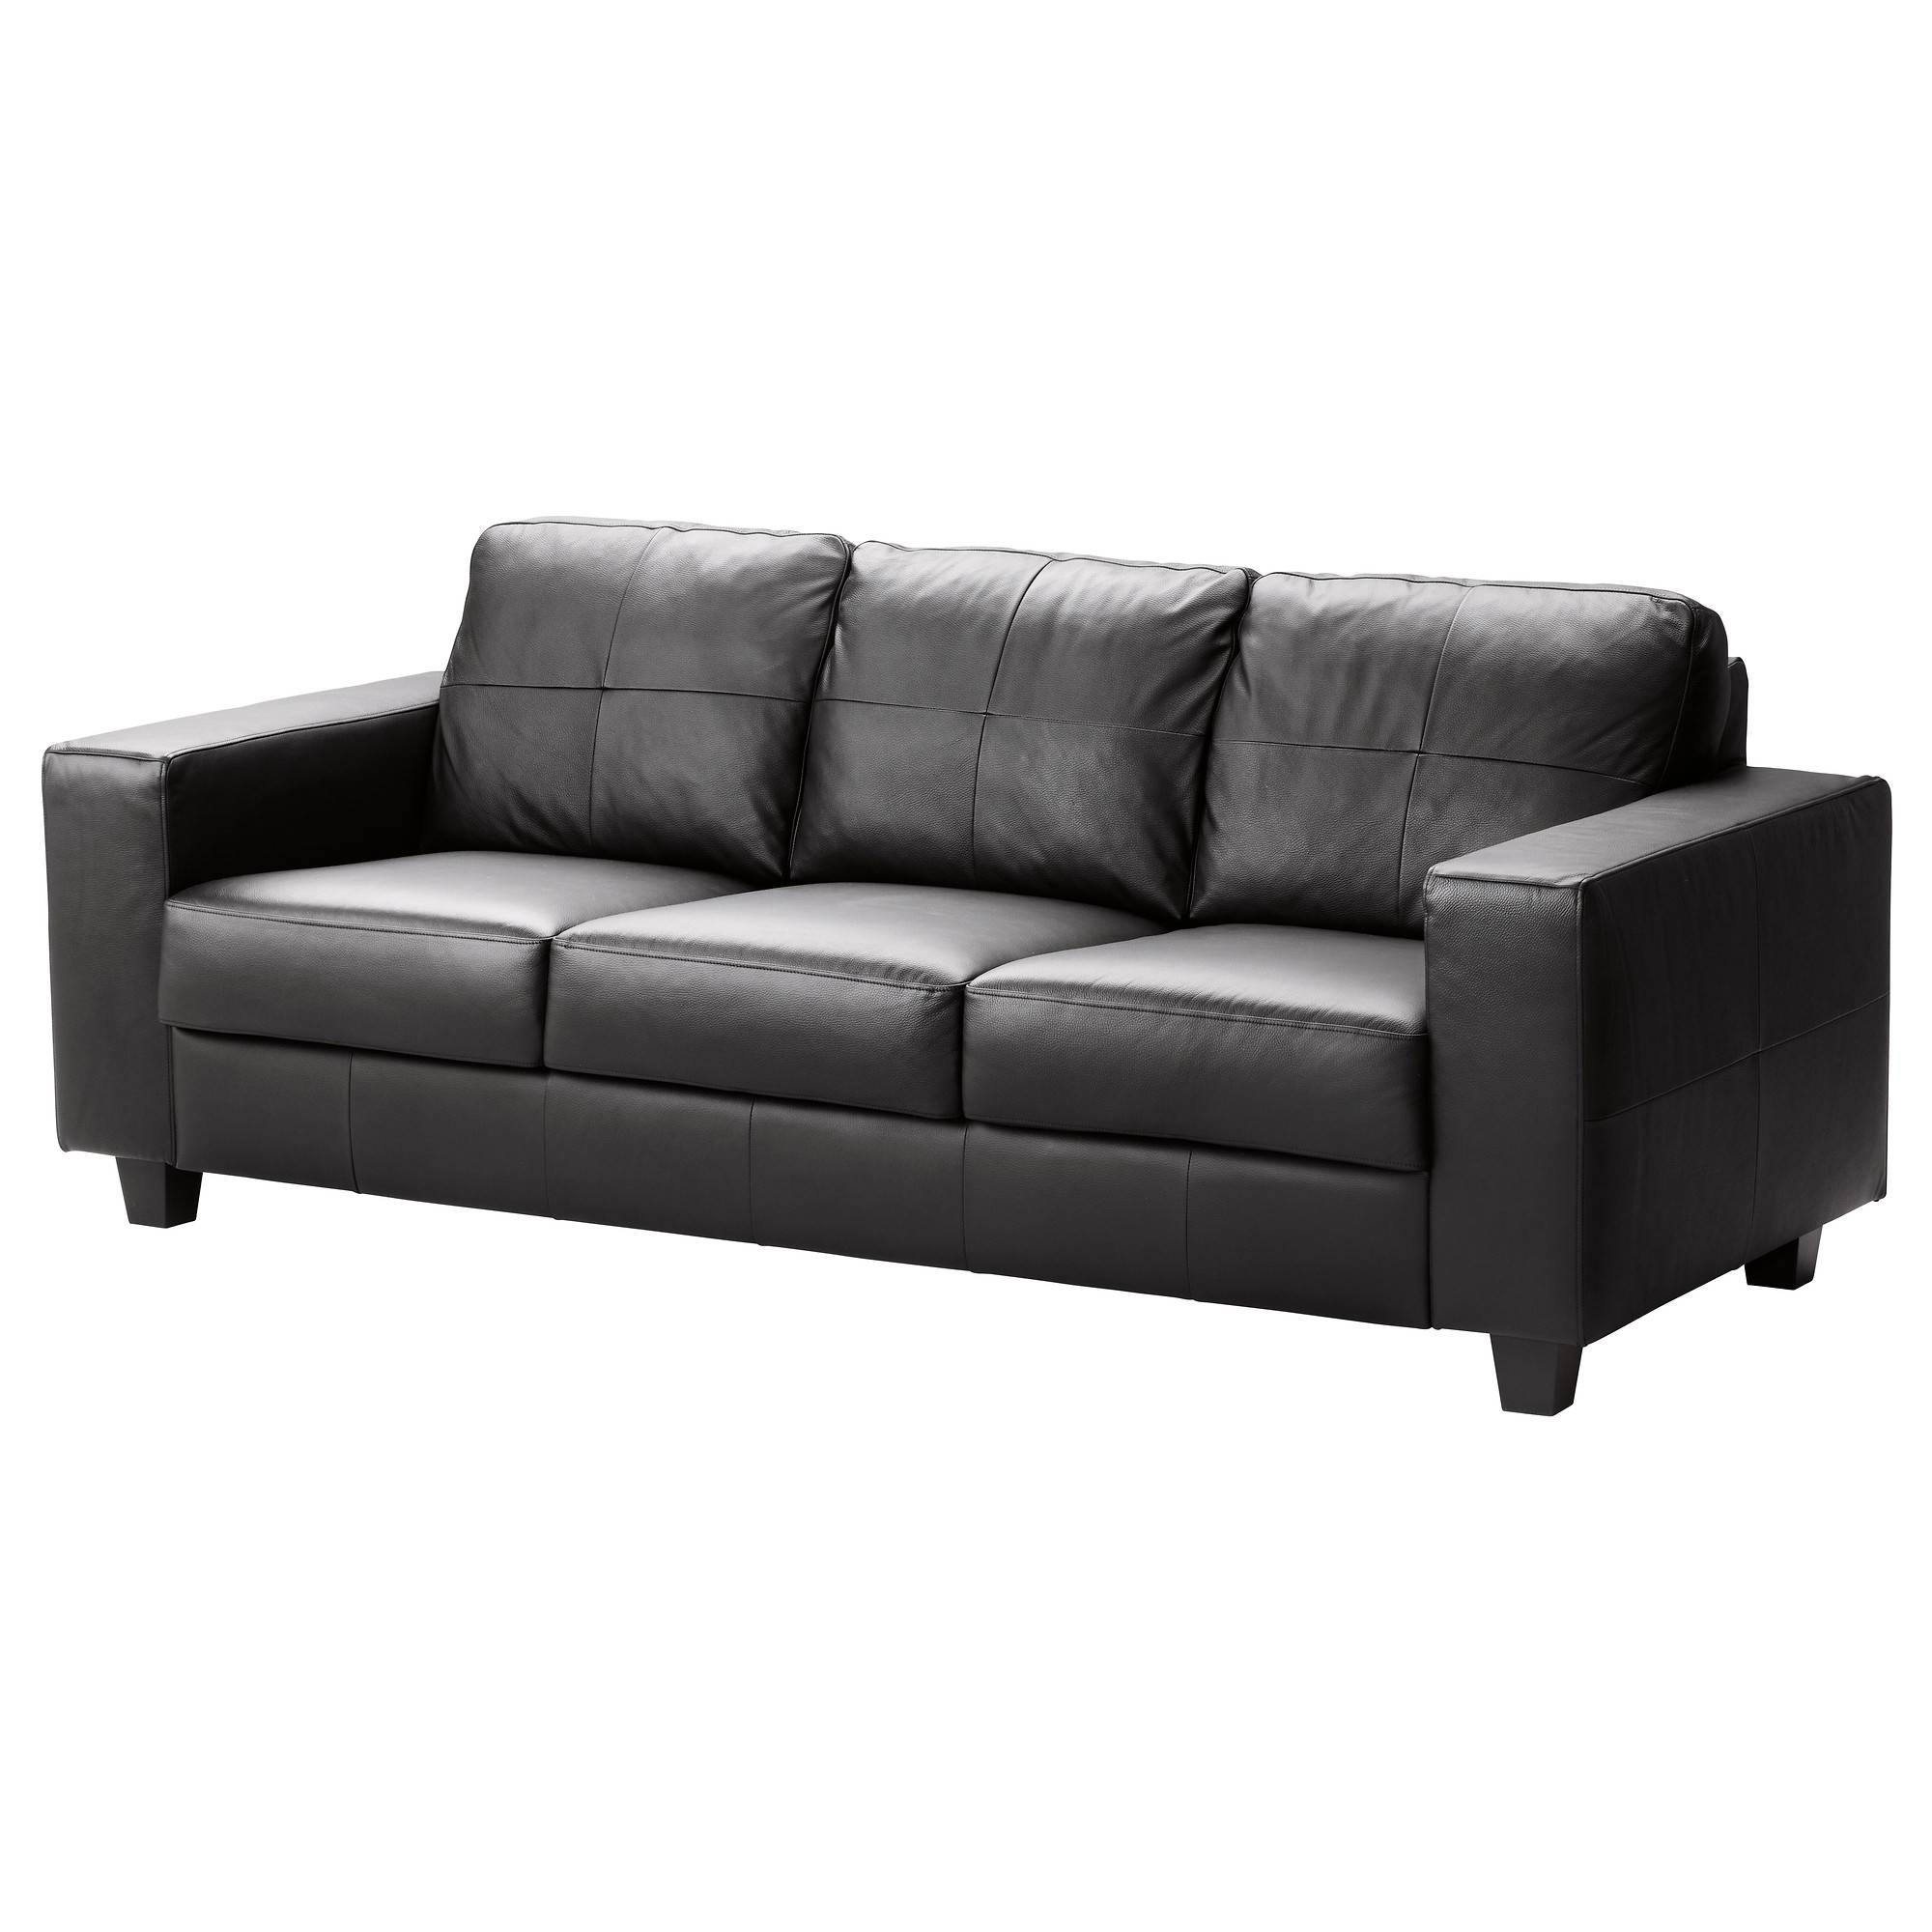 Leather & Faux Leather Couches, Chairs & Ottomans - Ikea inside Black Vinyl Sofas (Image 9 of 15)